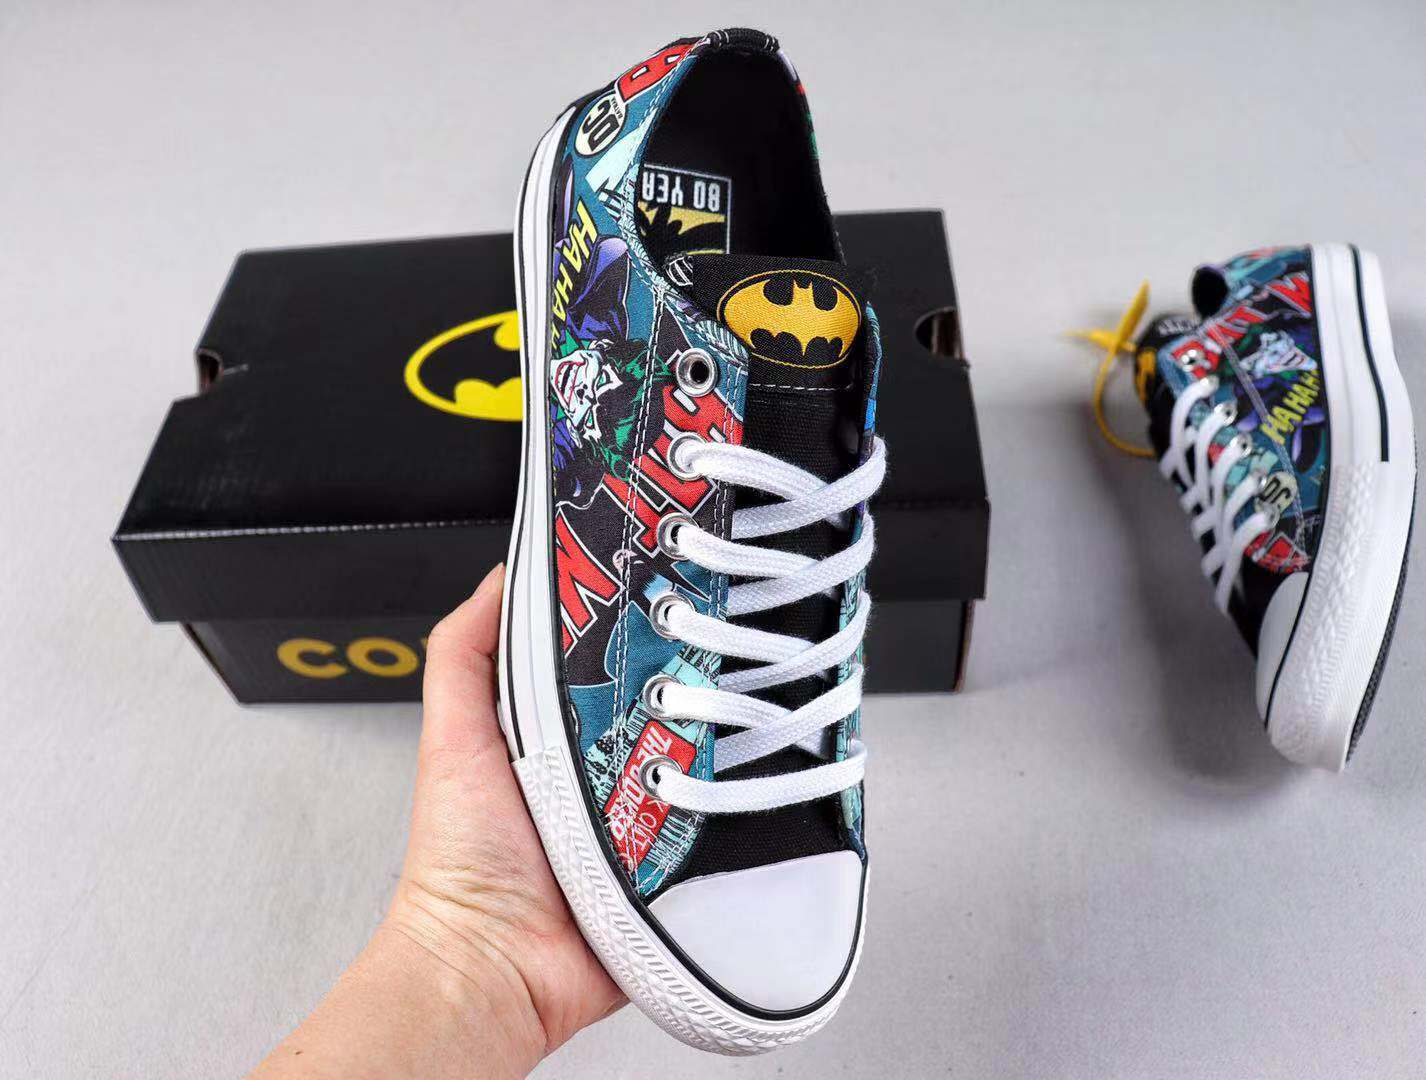 2019 New Arrival Converse x Batman Canvas Uppers Sneakers Free Shipping